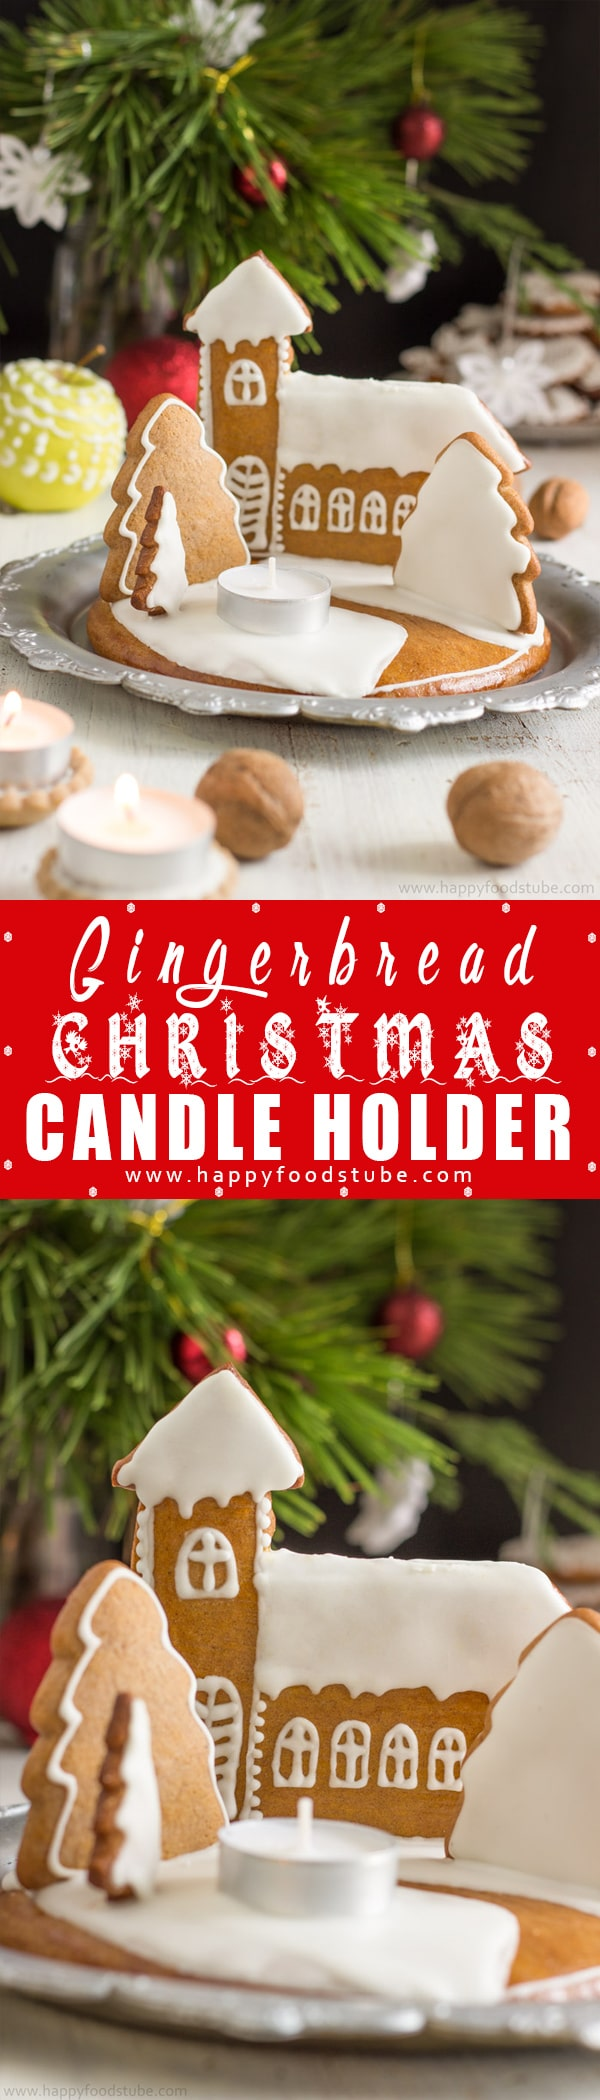 Get into the Holiday spirit by making gingerbread Christmas candle holder. This lovely centerpiece is easy to make and smells amazing. #christmas #gingerbread #candles #DIY #holidays #handmade #centerpiece #family